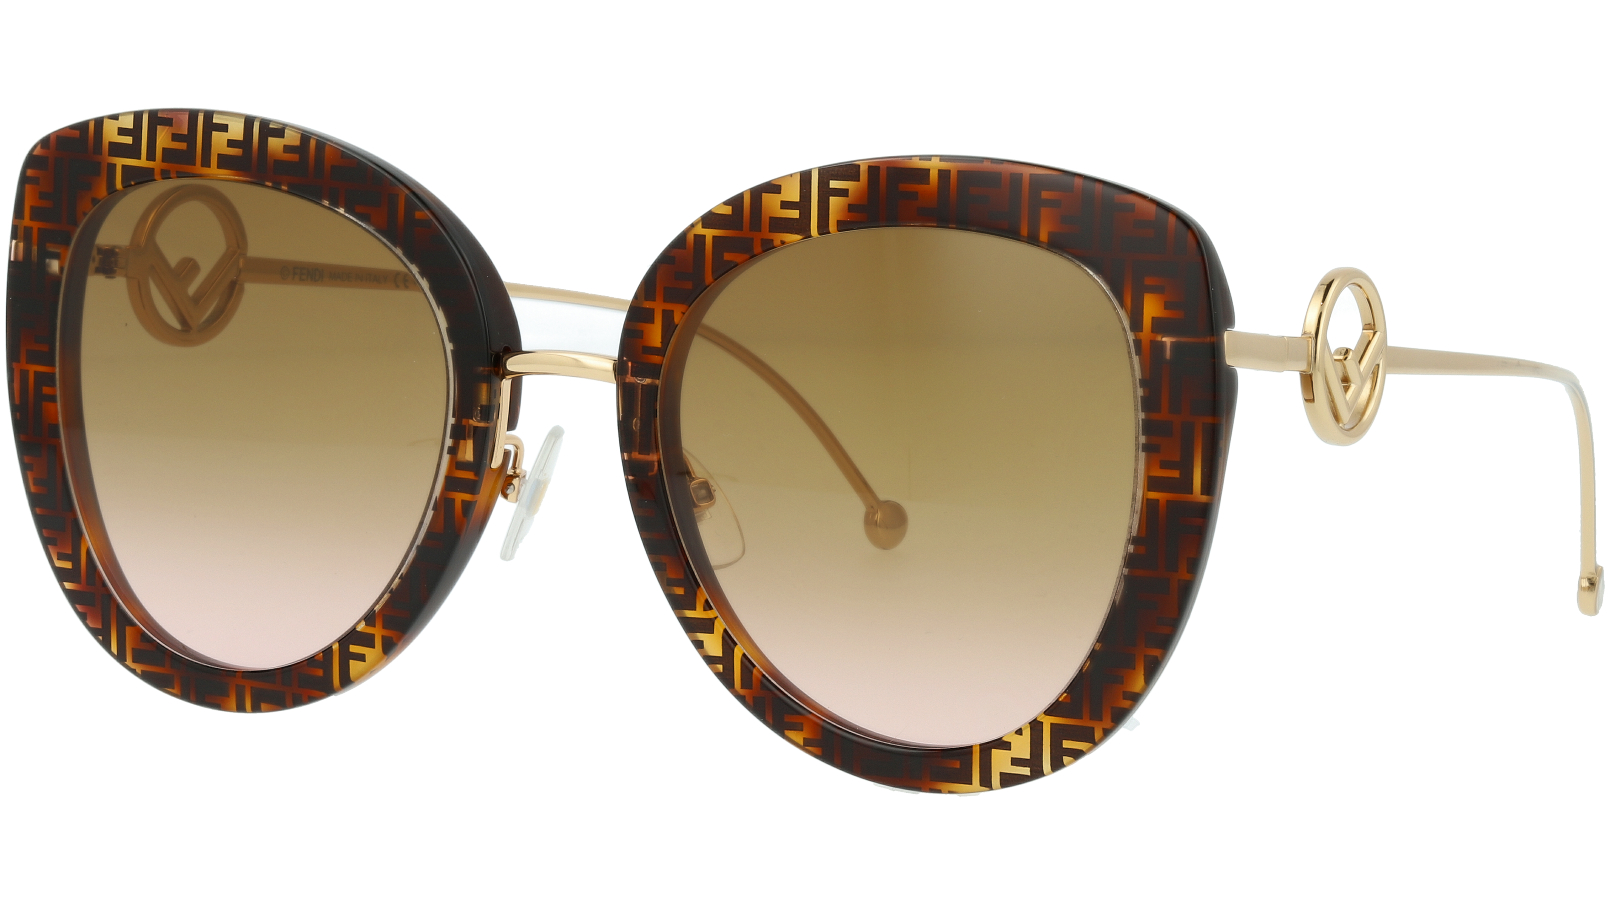 FENDI FF0409/S 086M2 54 Dark Havana Full-Rim Sunglasses